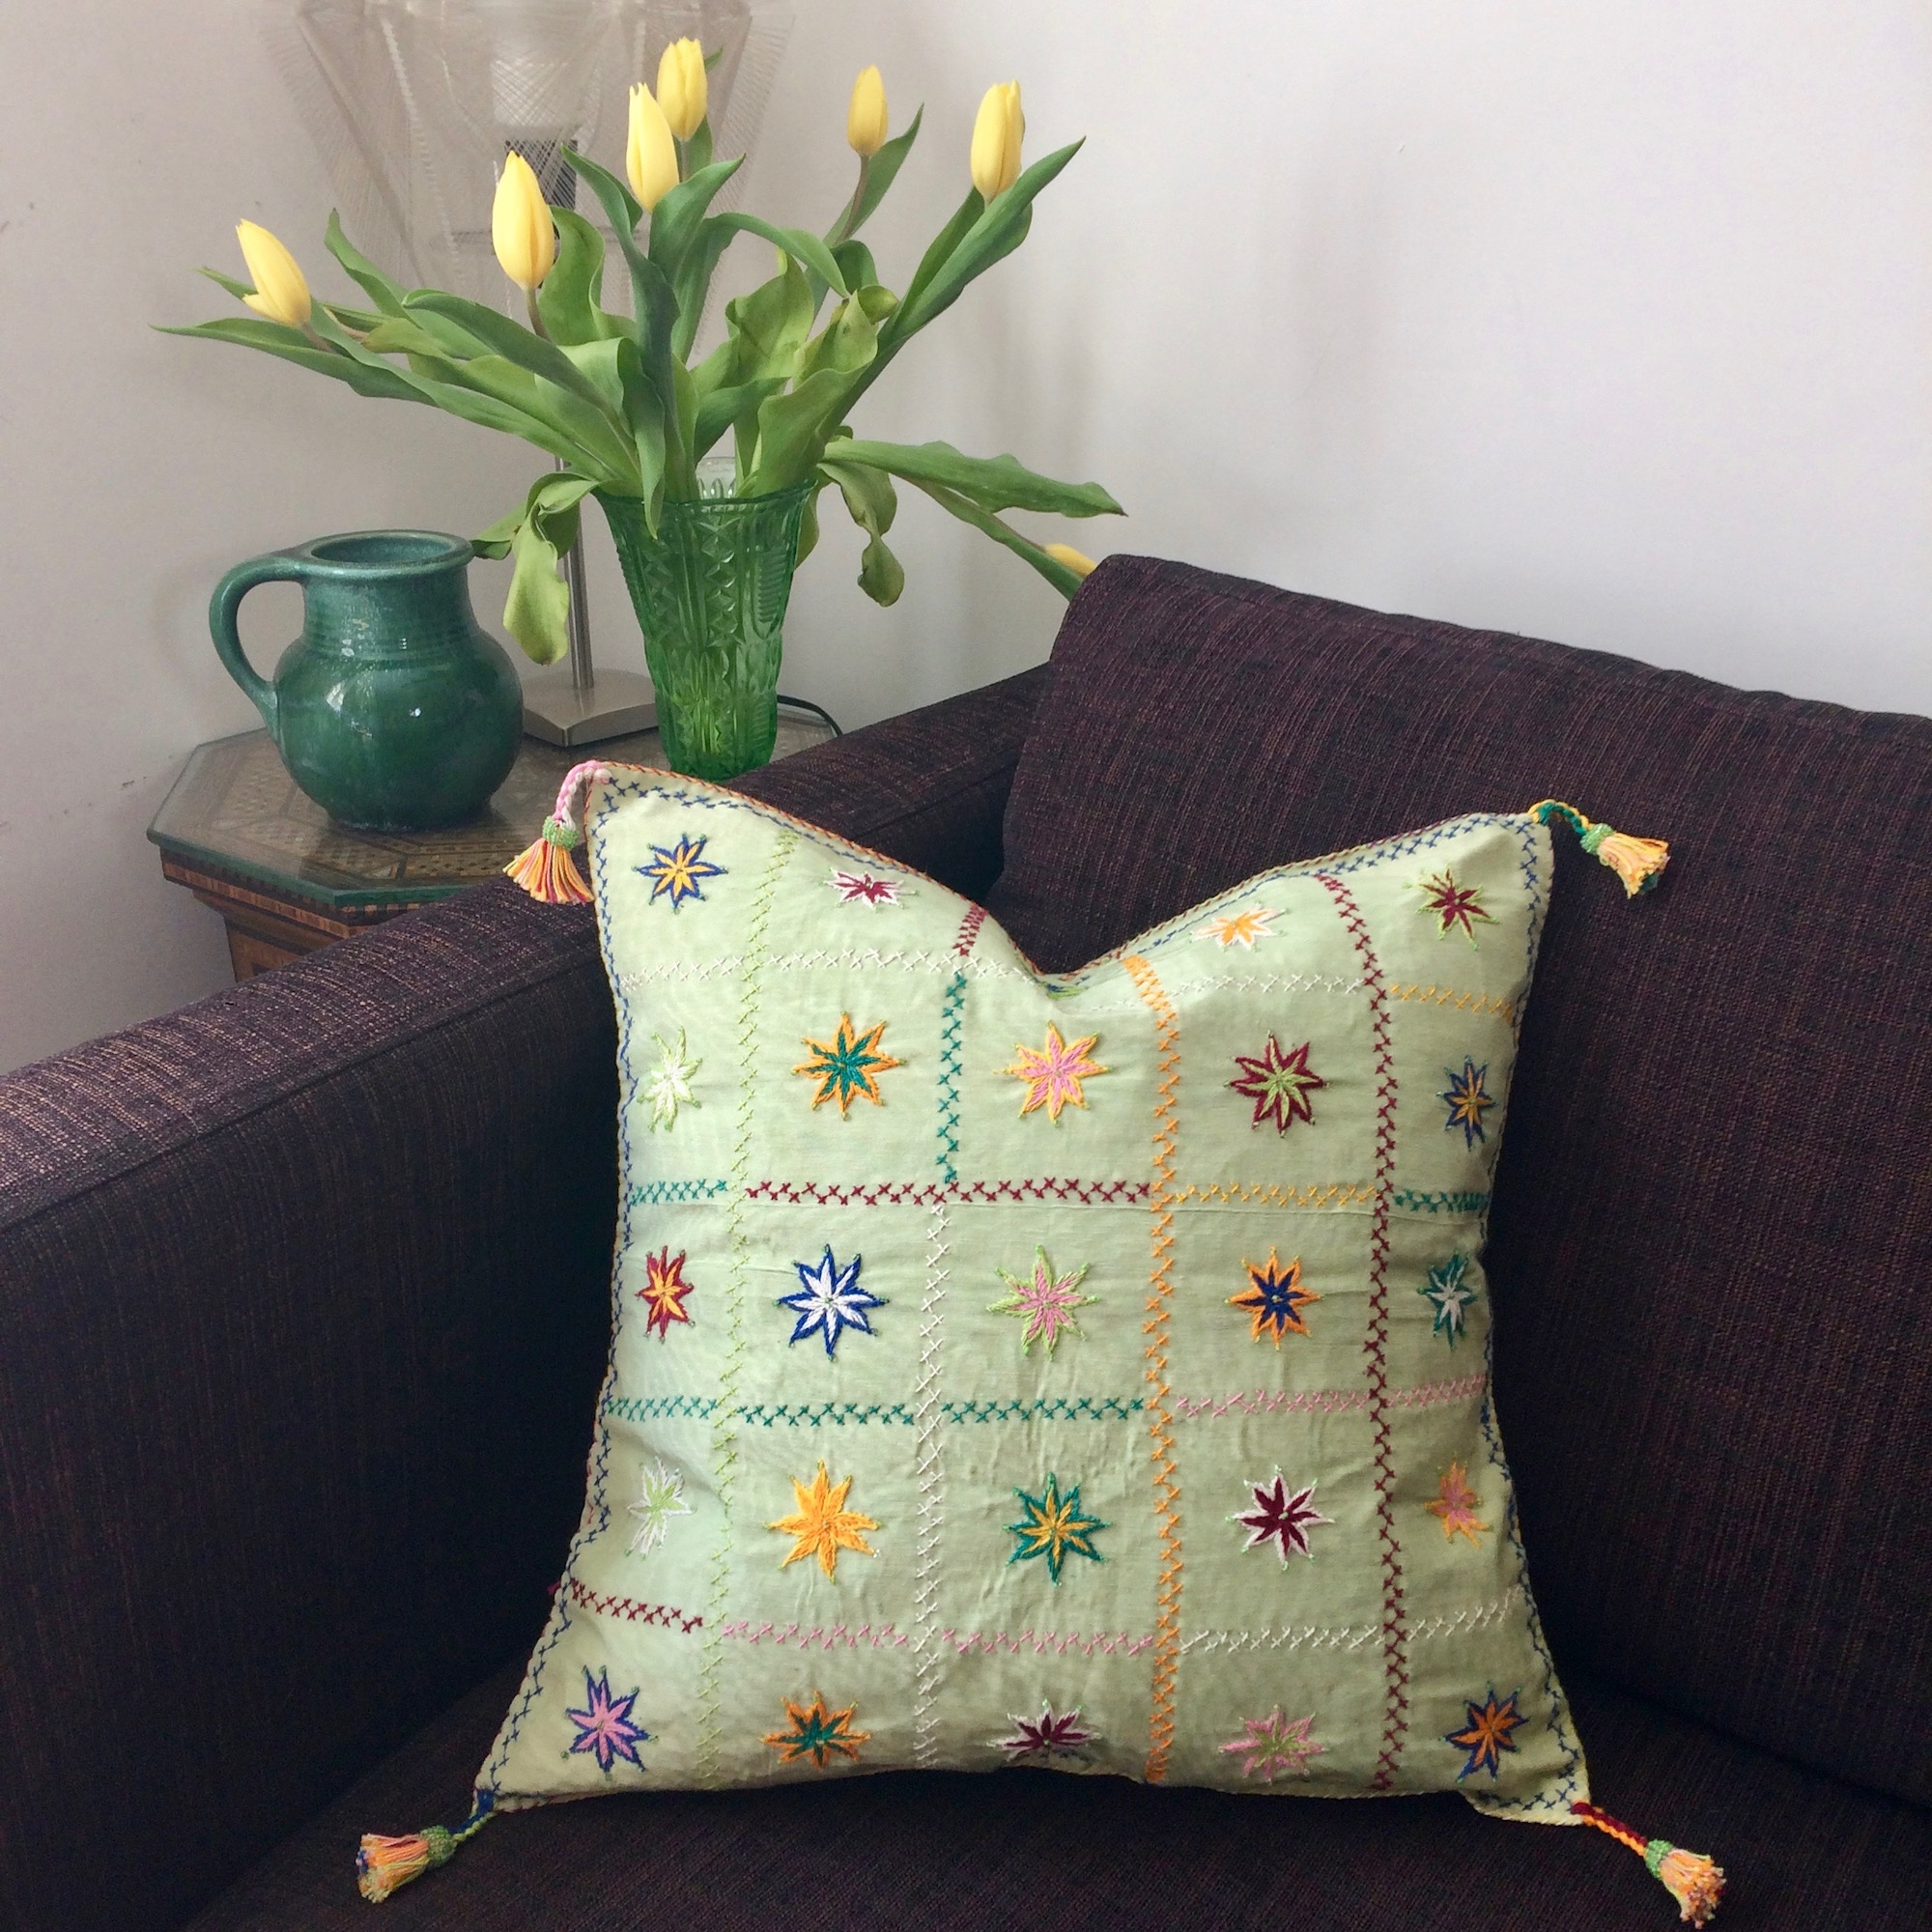 Bedouin Embroidered & Beaded Cushion Cover in Pale Green